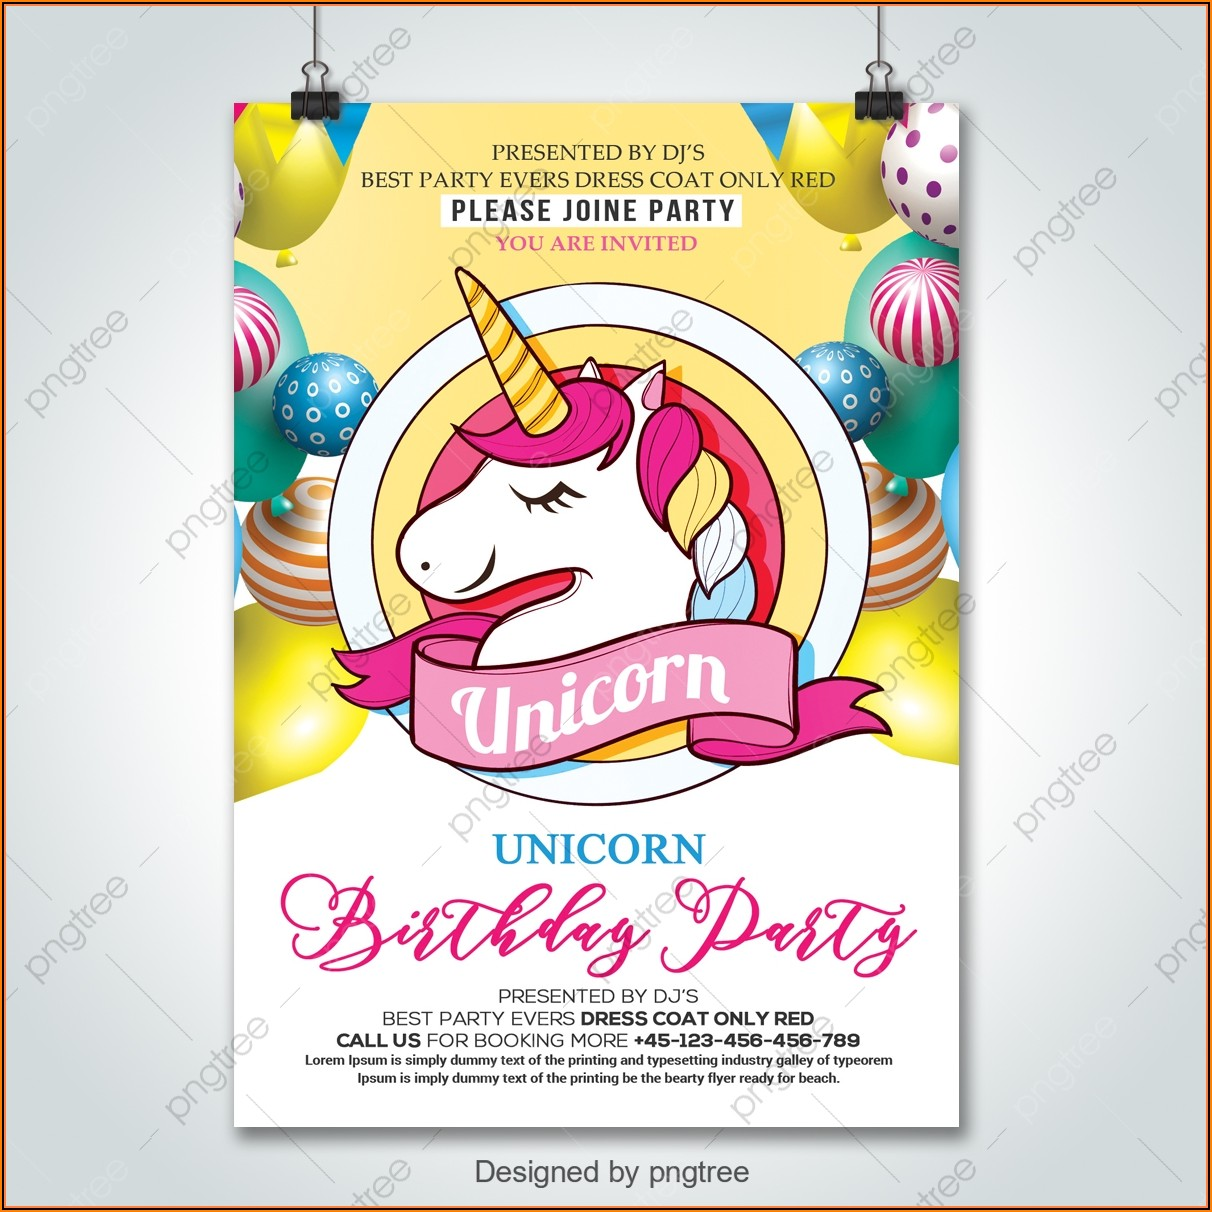 Unicorn Birthday Party Invitation Template Free